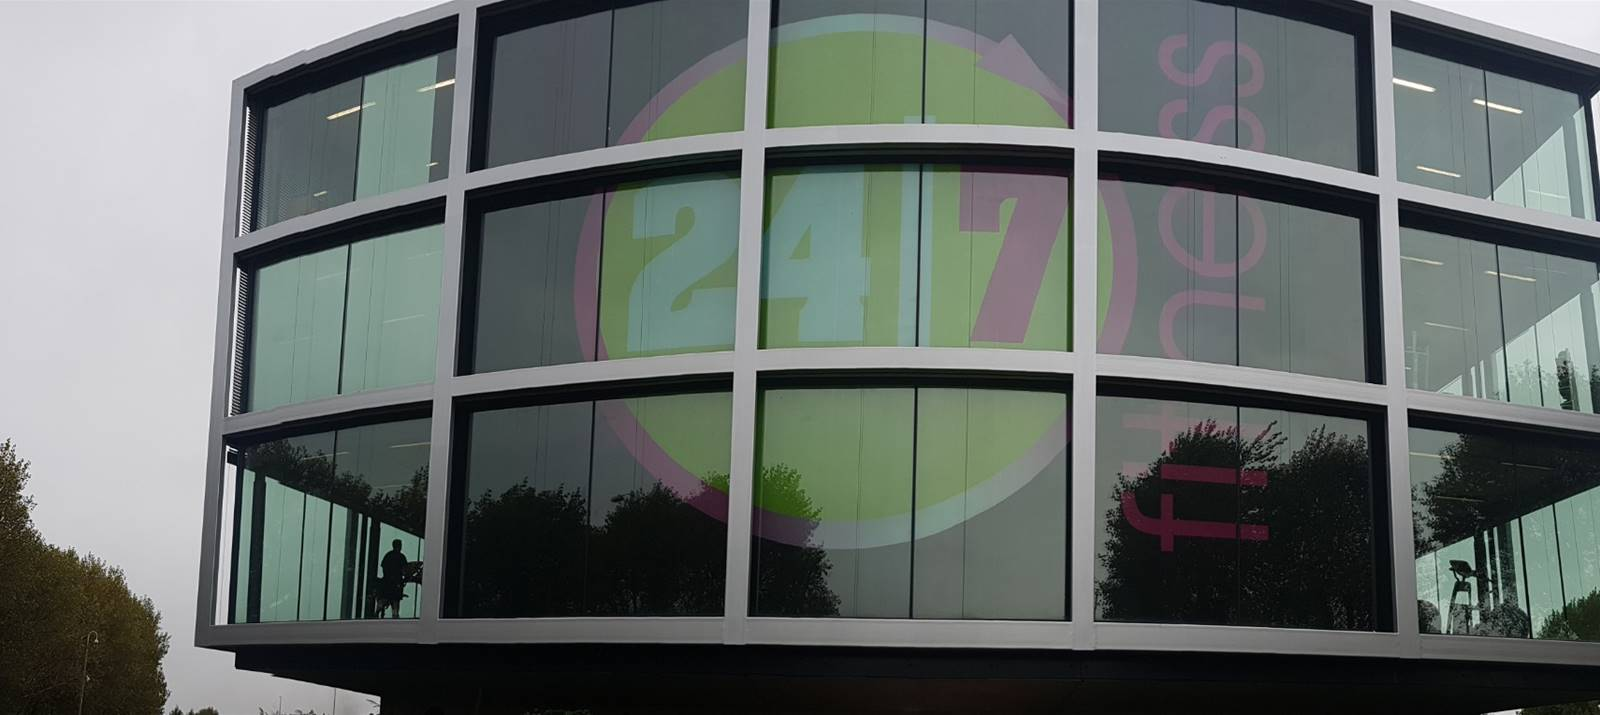 24/7 Fitness Window Graphics by Signs Express (Worcester)